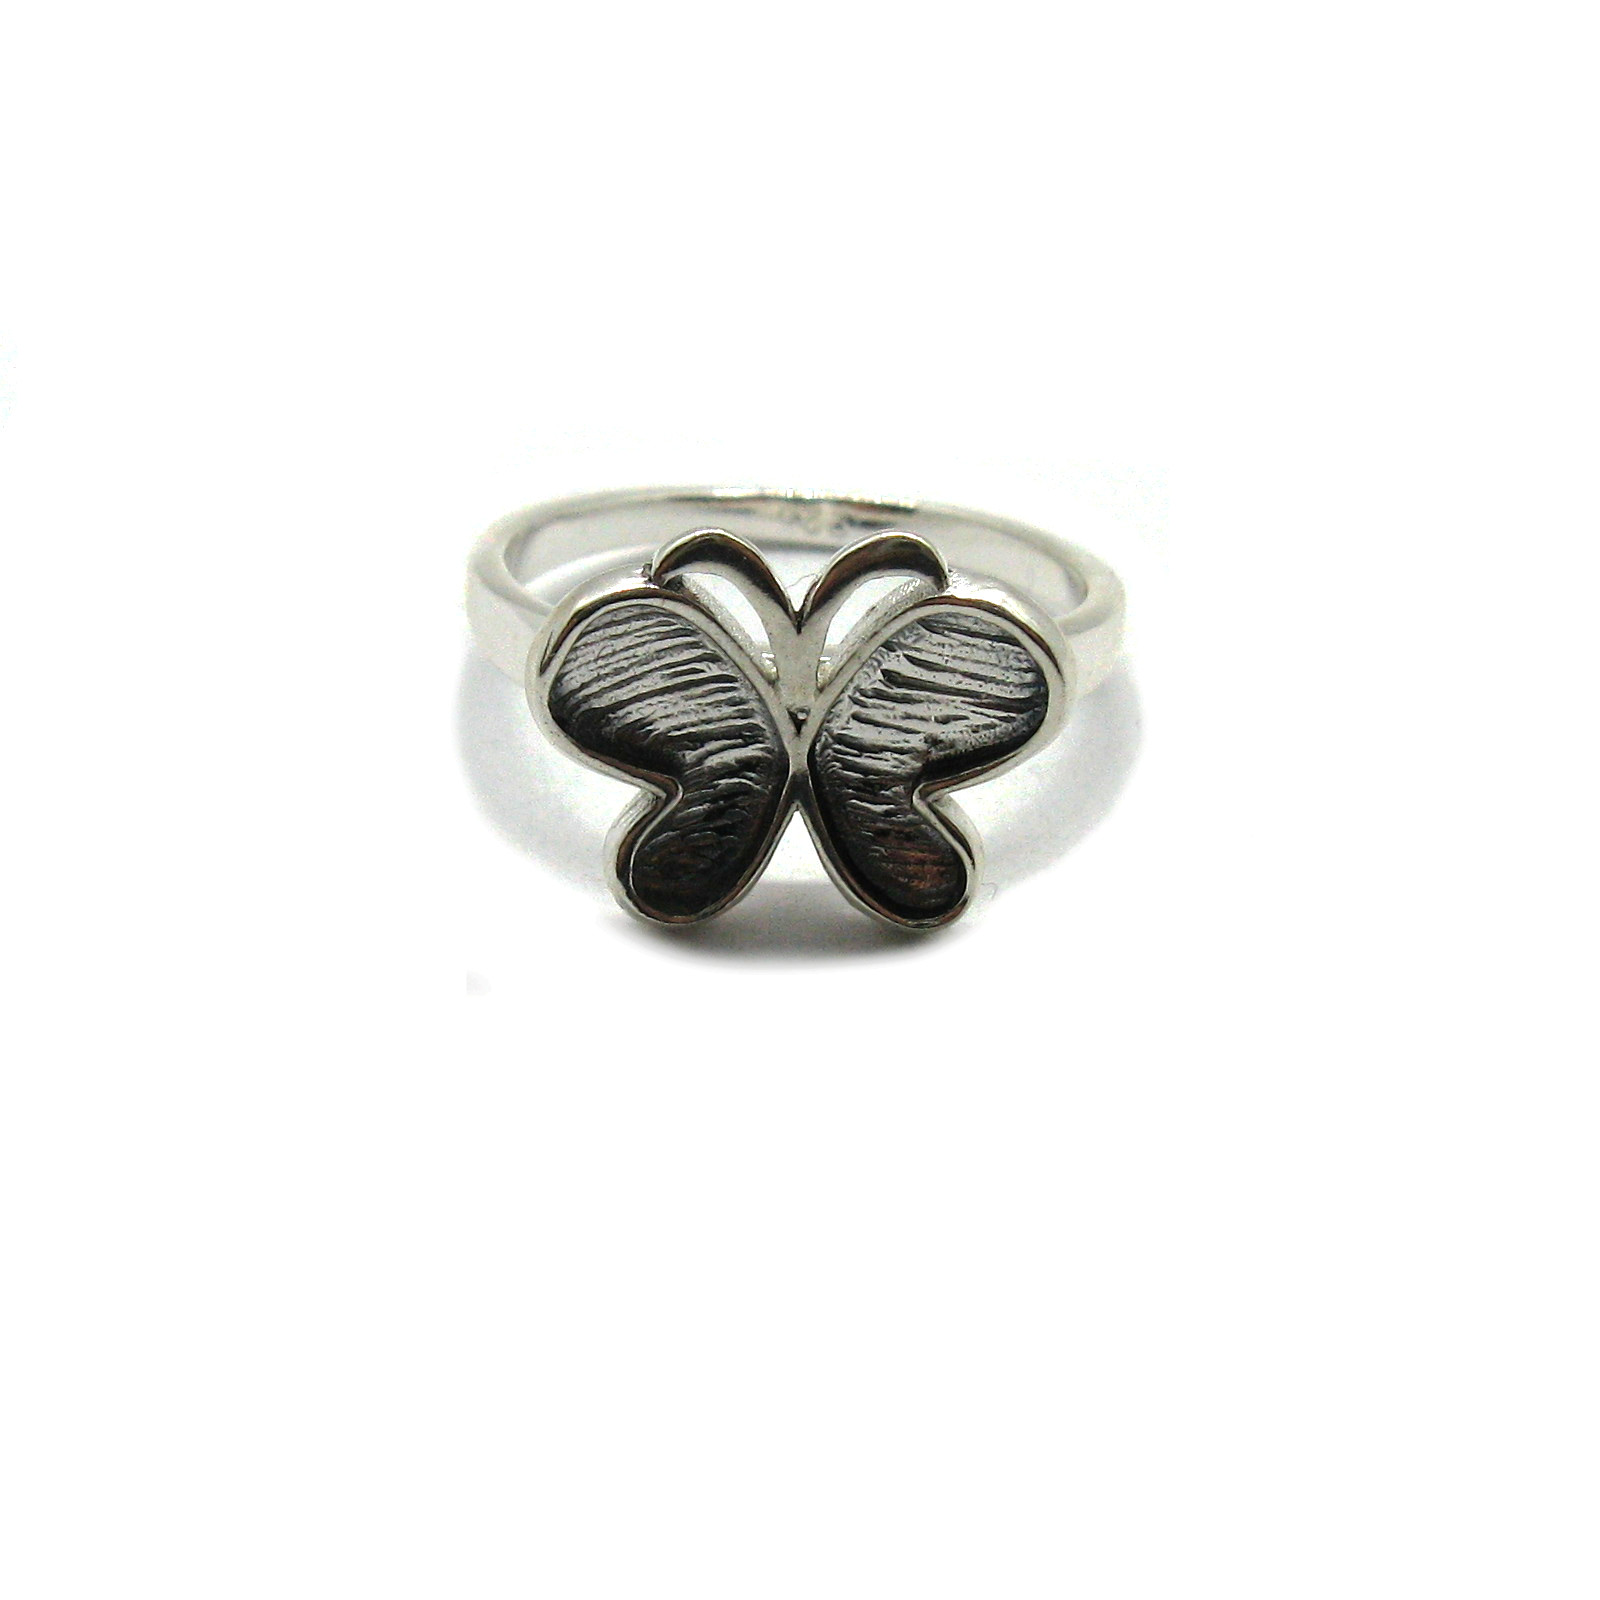 Silver ring - R001878